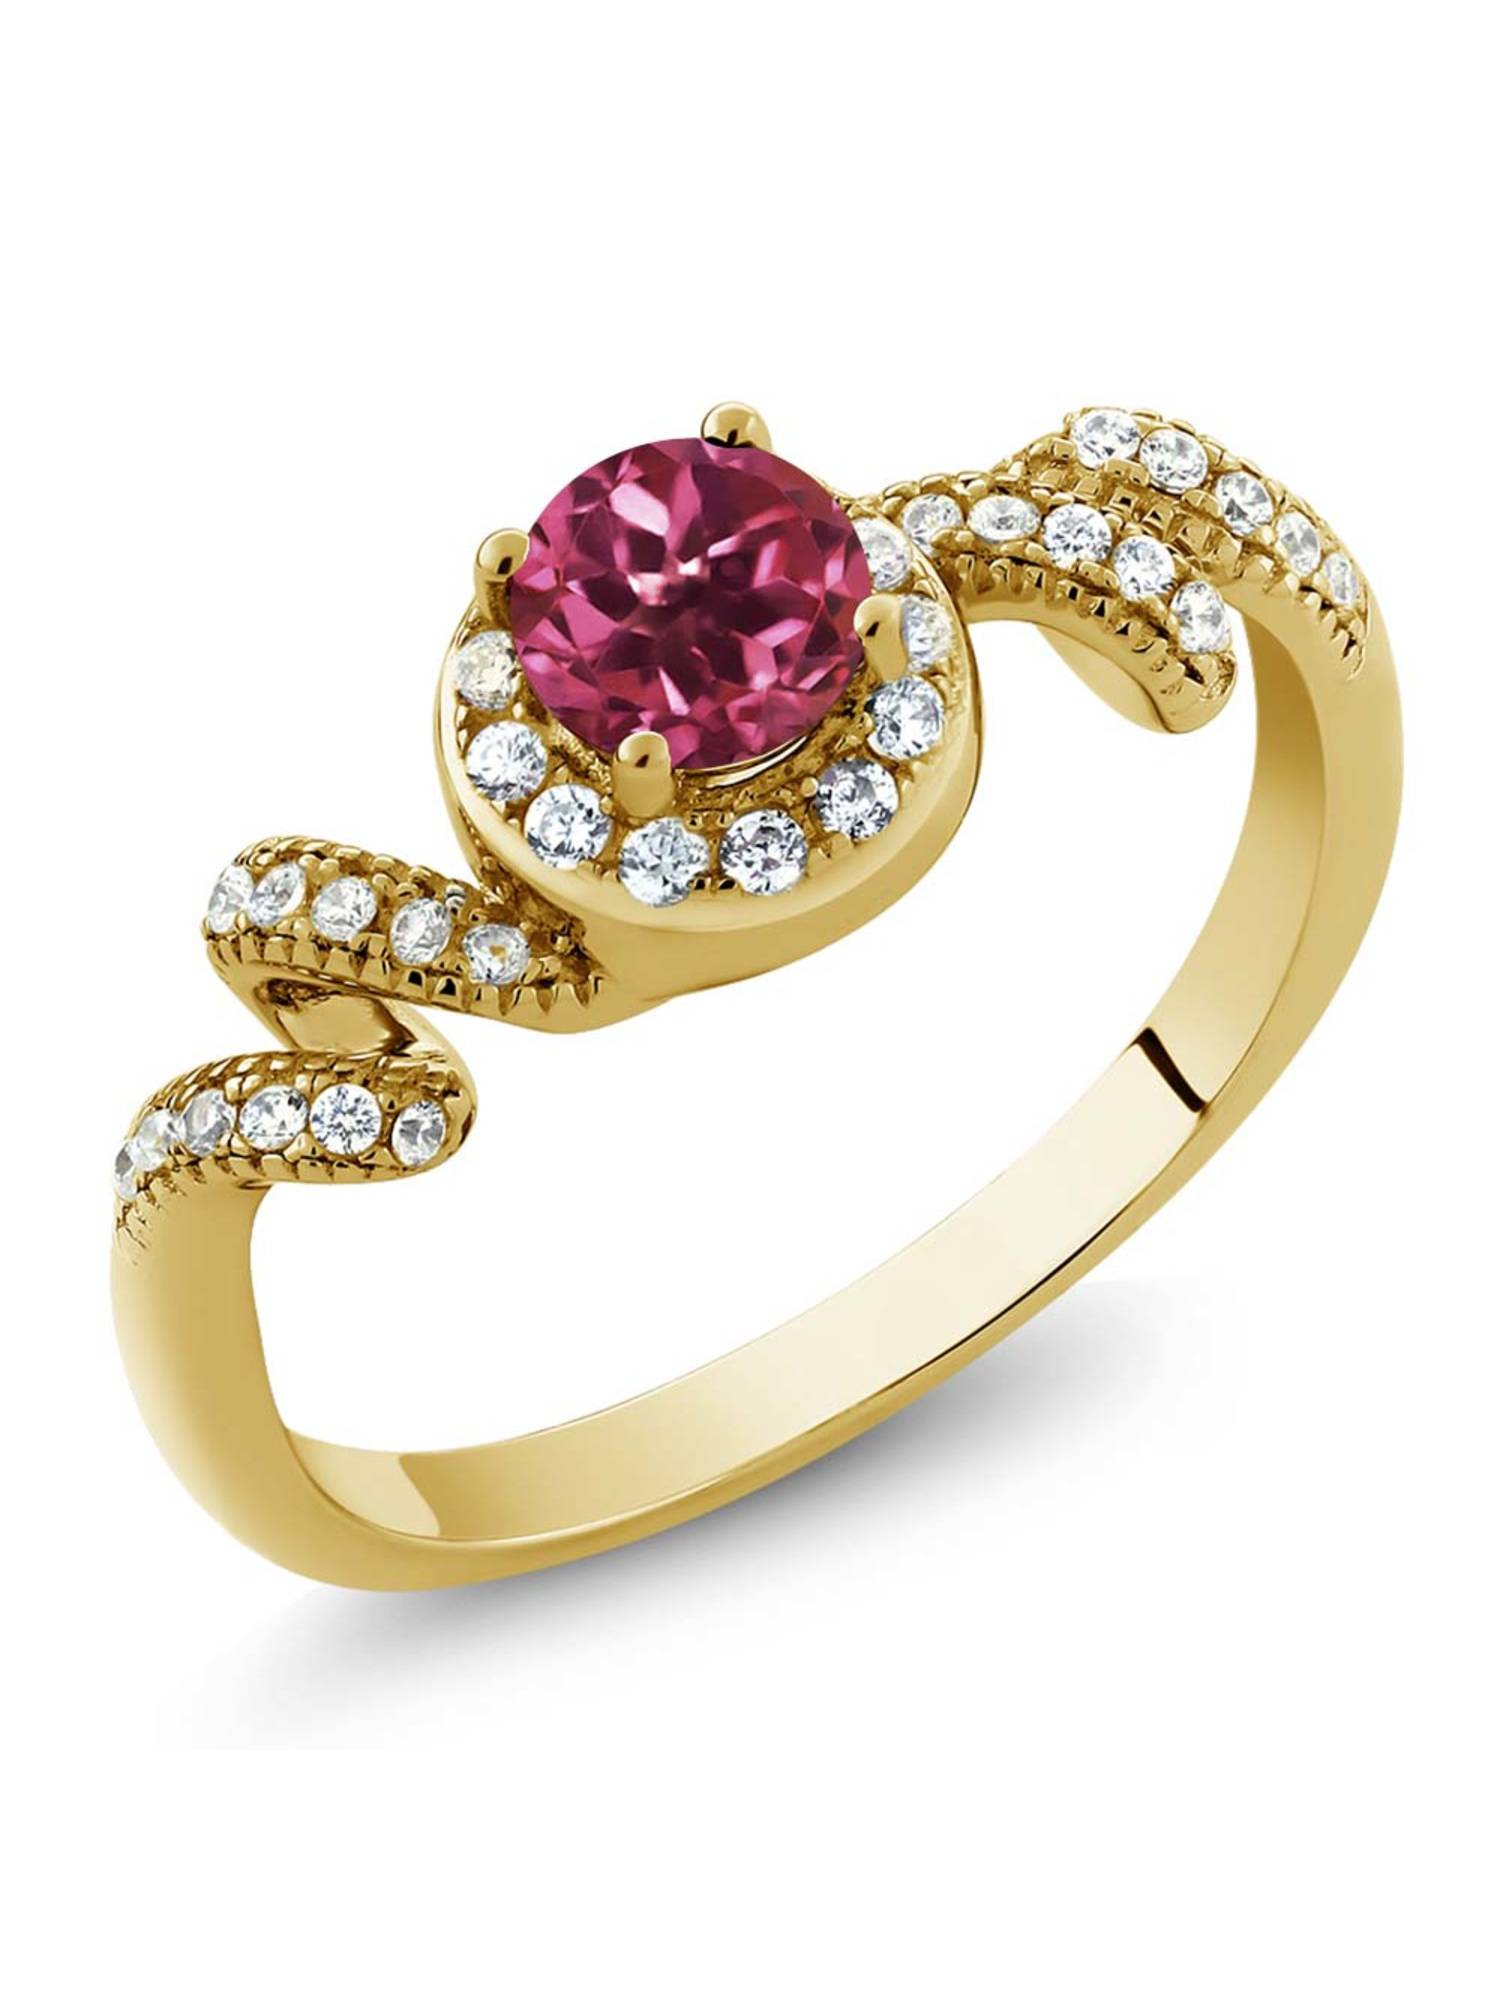 0.89 Ct Round Pink Tourmaline 18K Yellow Gold Plated Silver Ring by